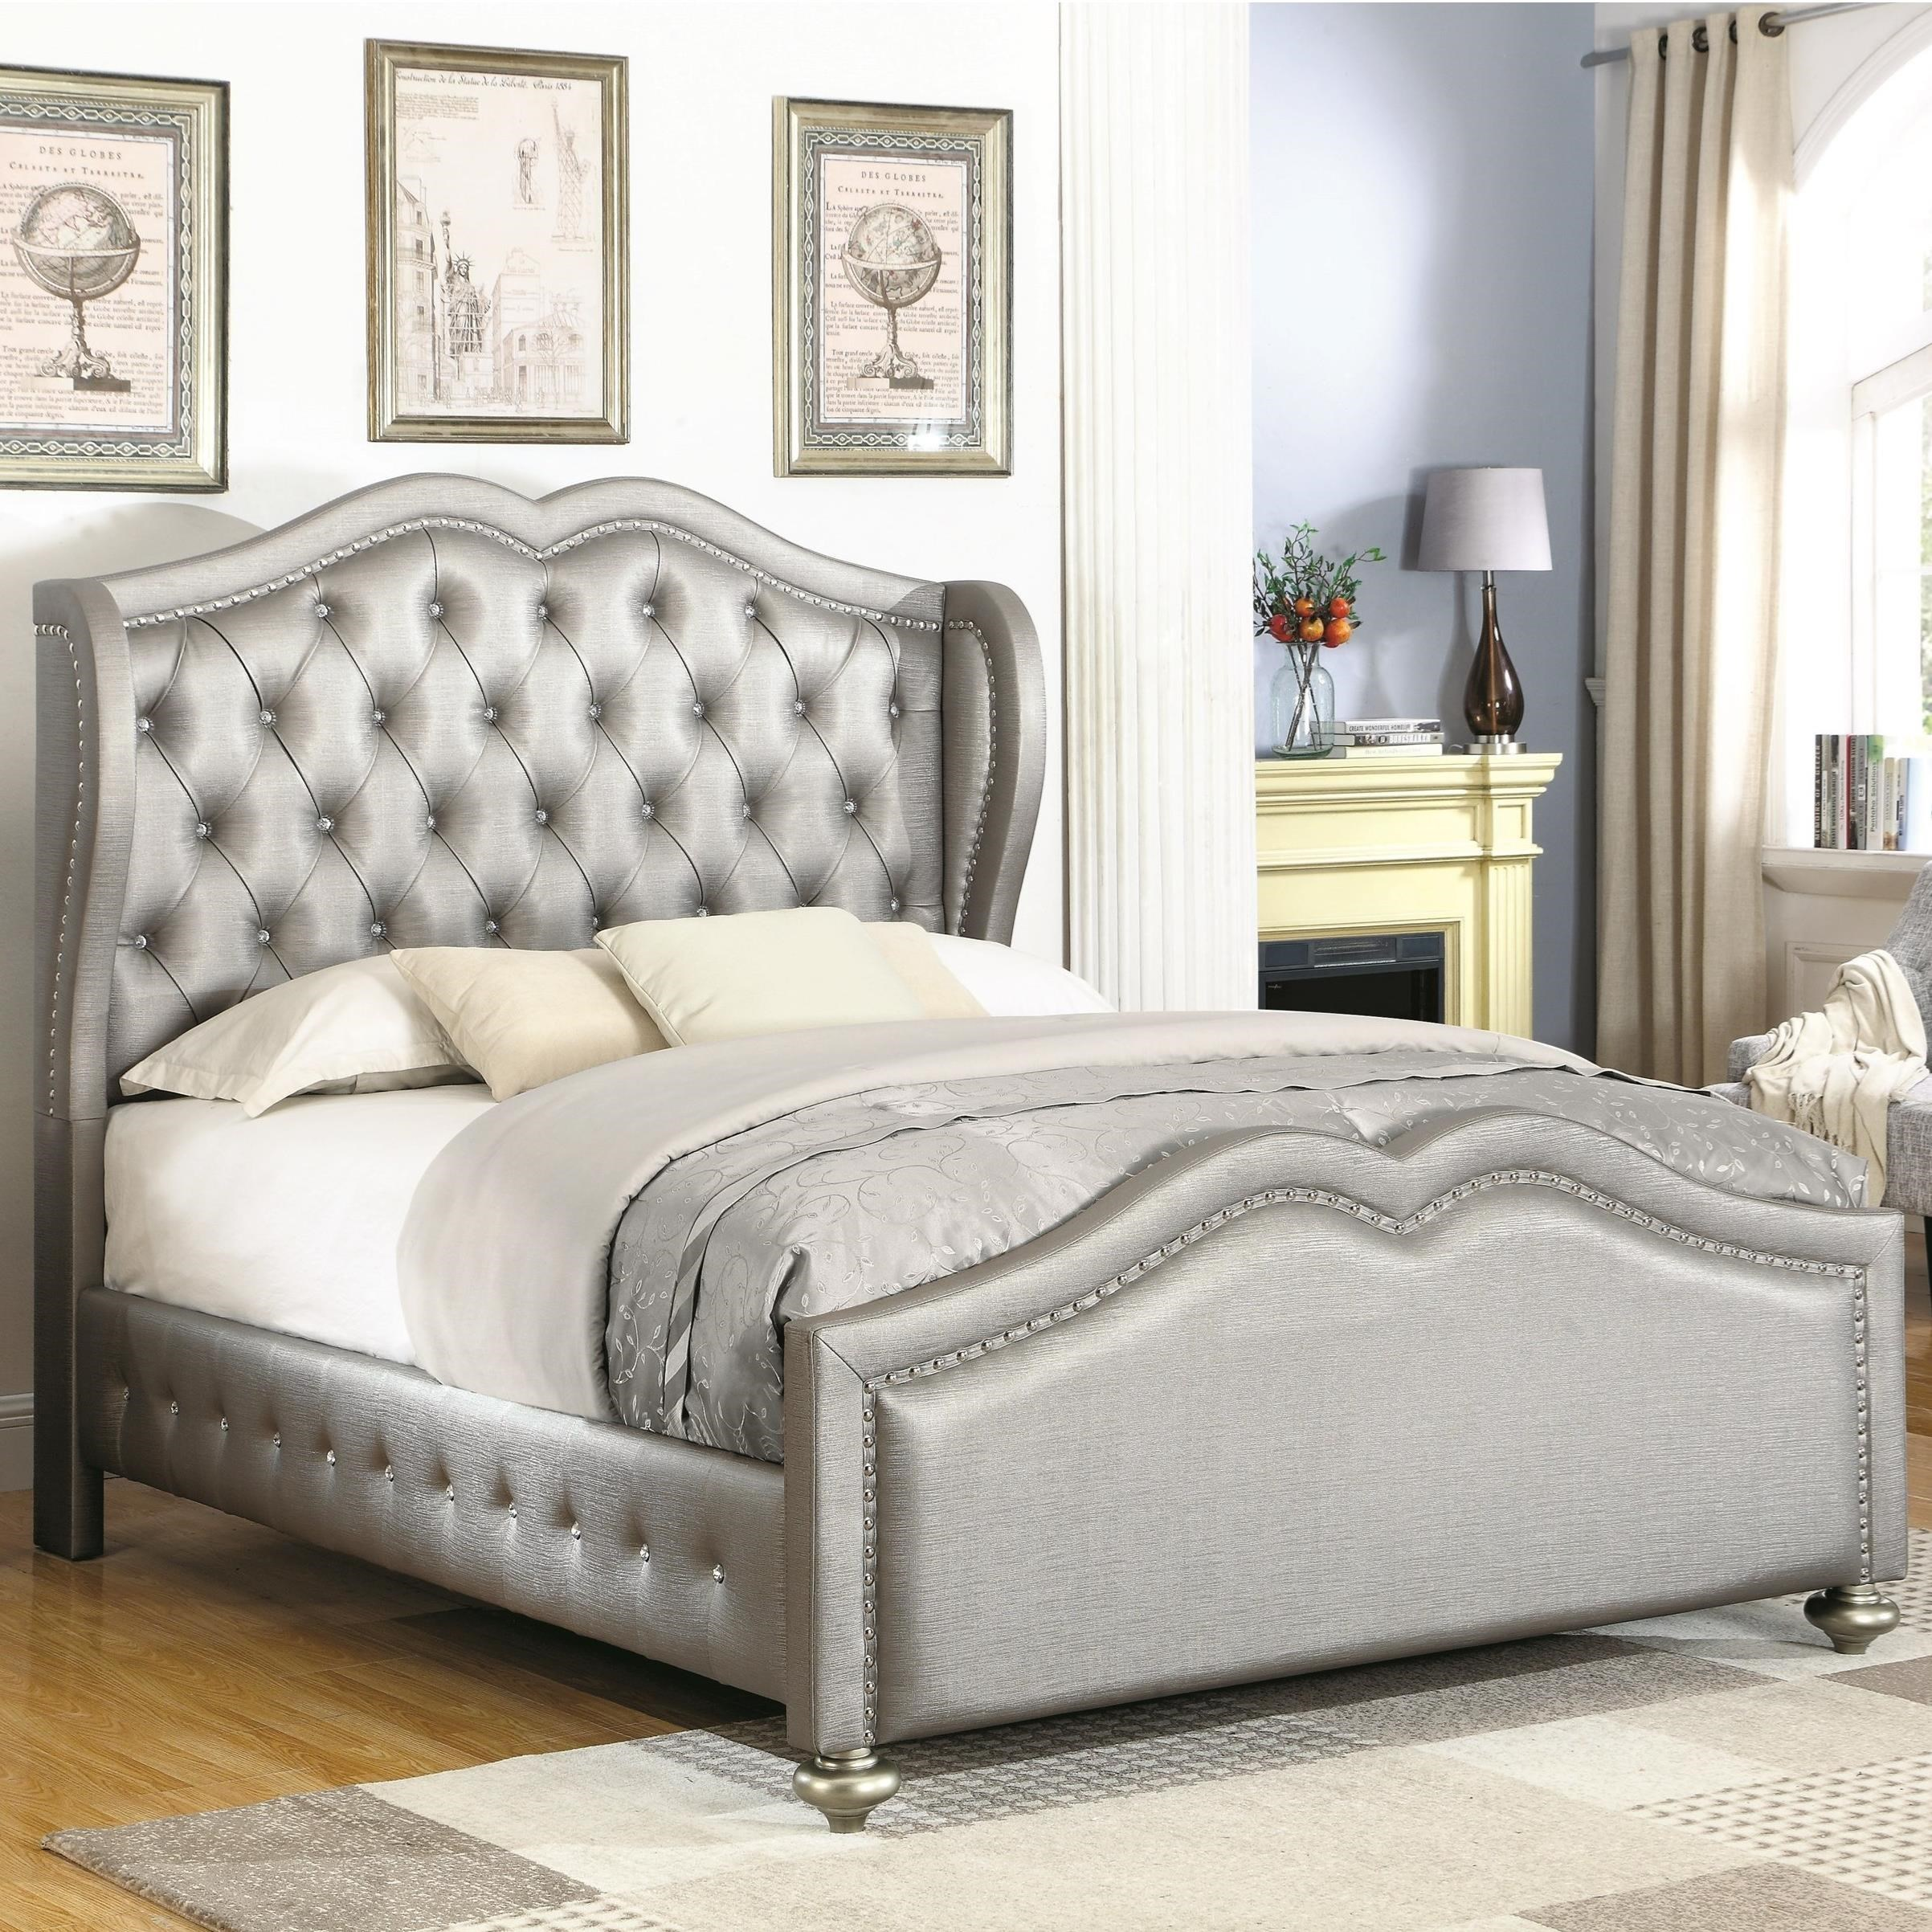 Belmont Eastern King Bed by Coaster at Northeast Factory Direct